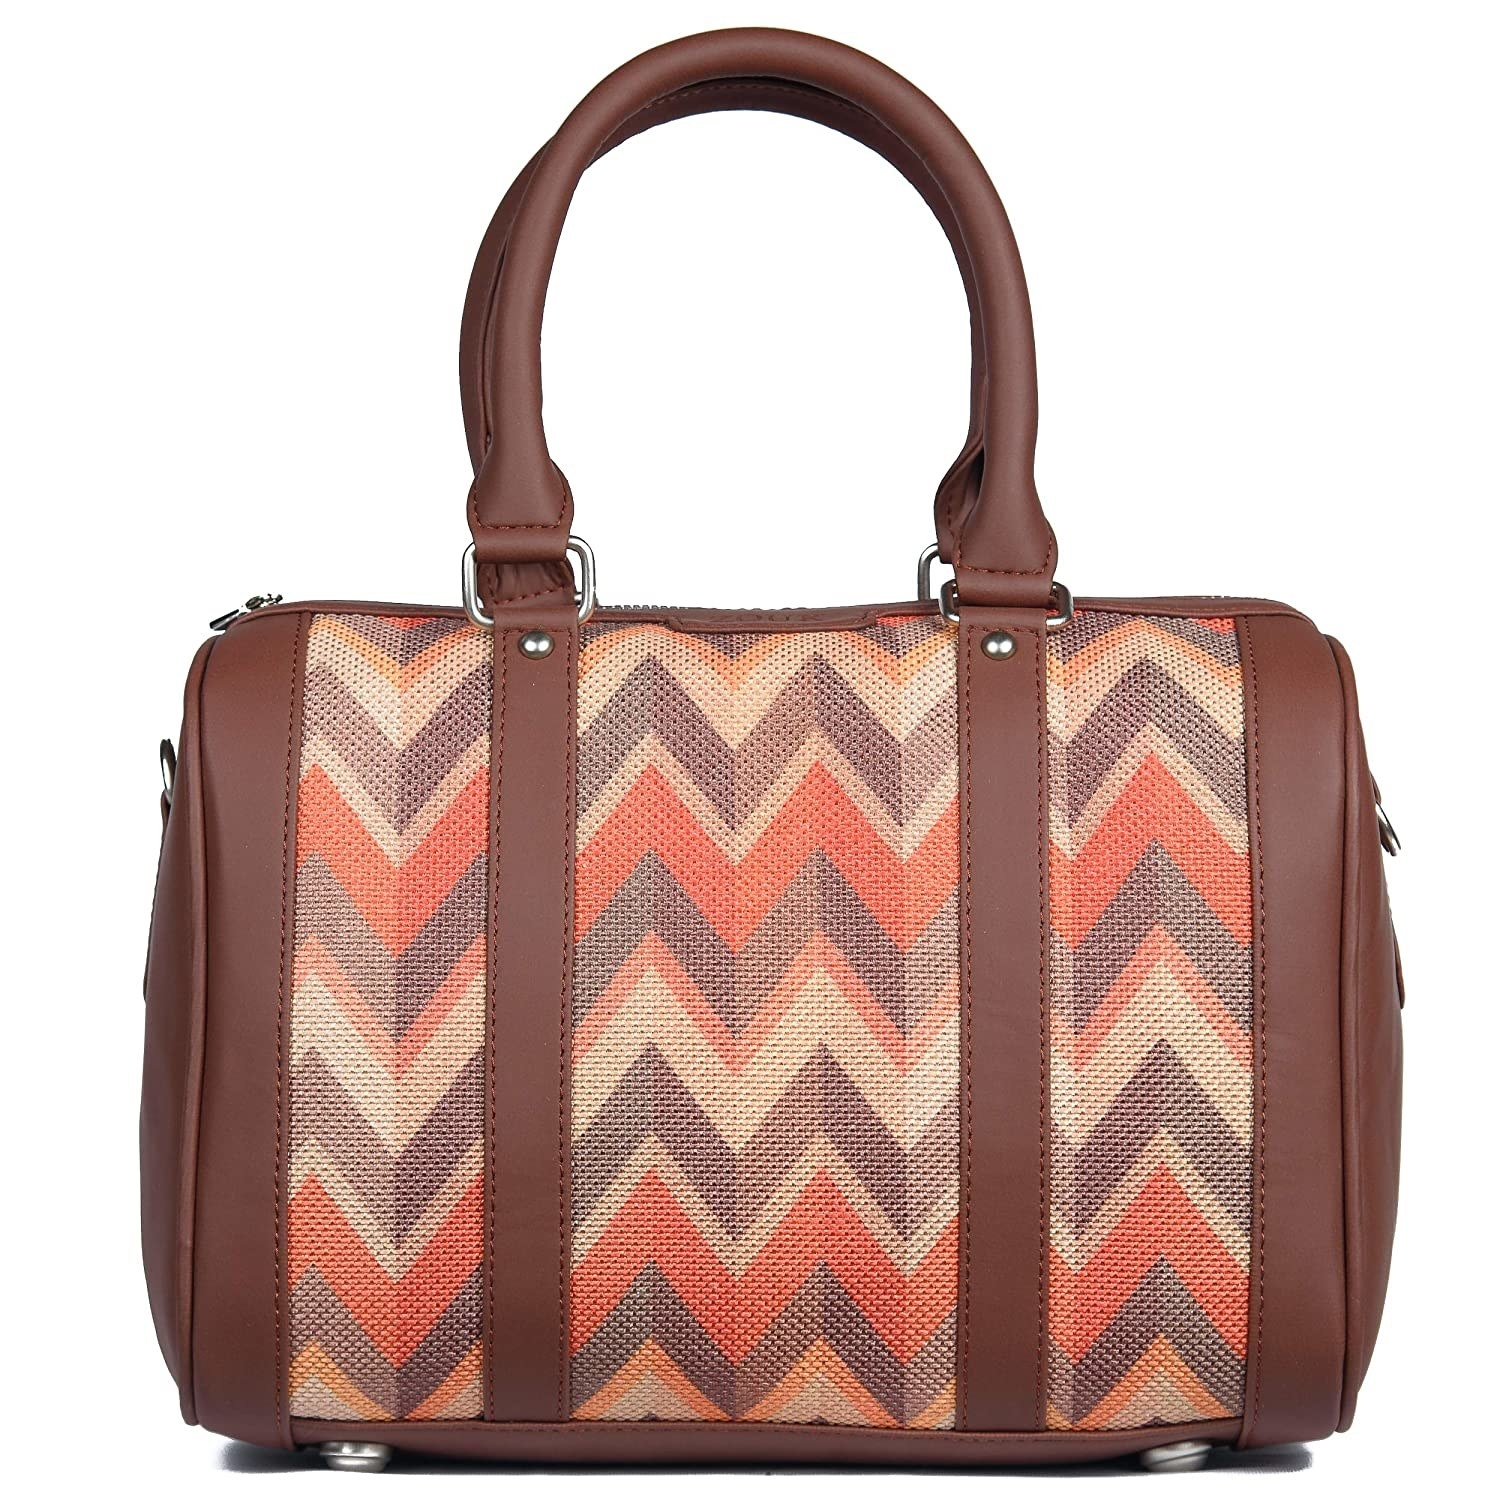 A brown leather bag with a zigzag print in orange, brown, and beige